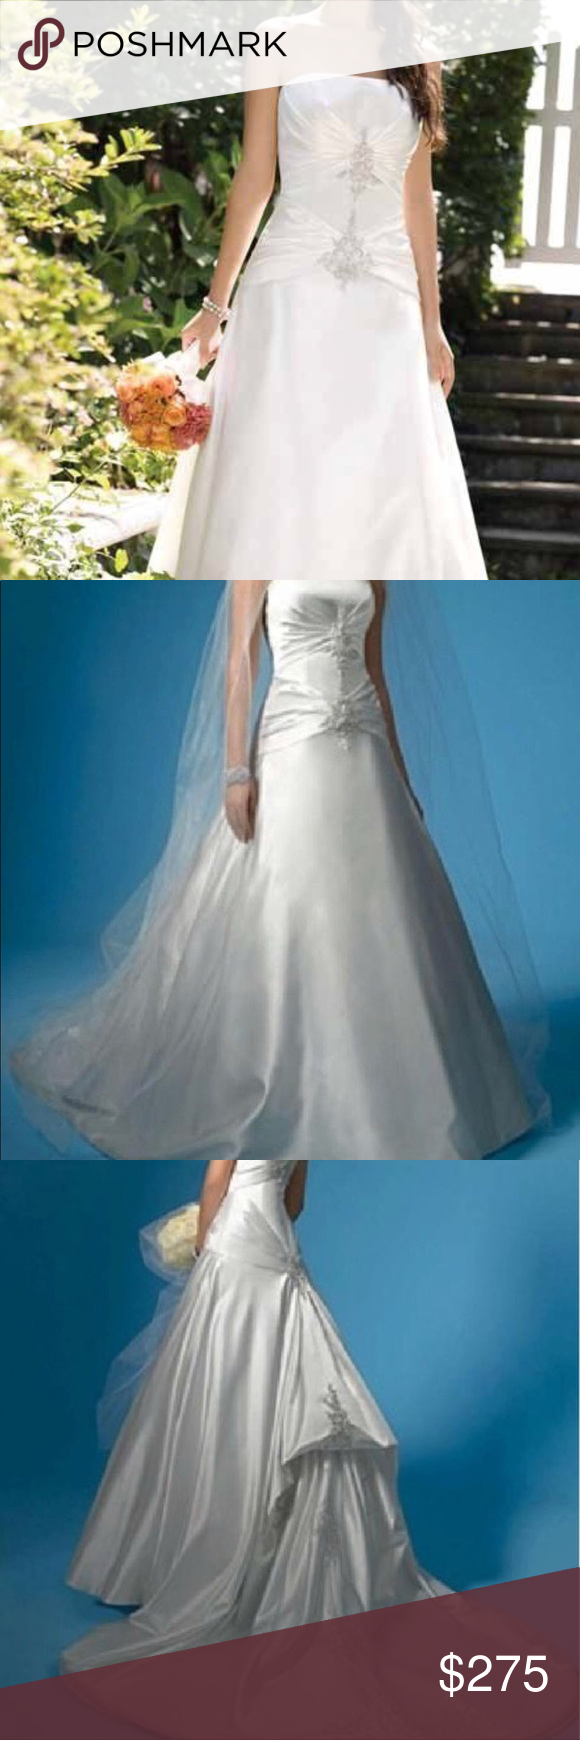 Alfred Angelo Wedding Dress ********Pearl Color Dress Open Box never ...